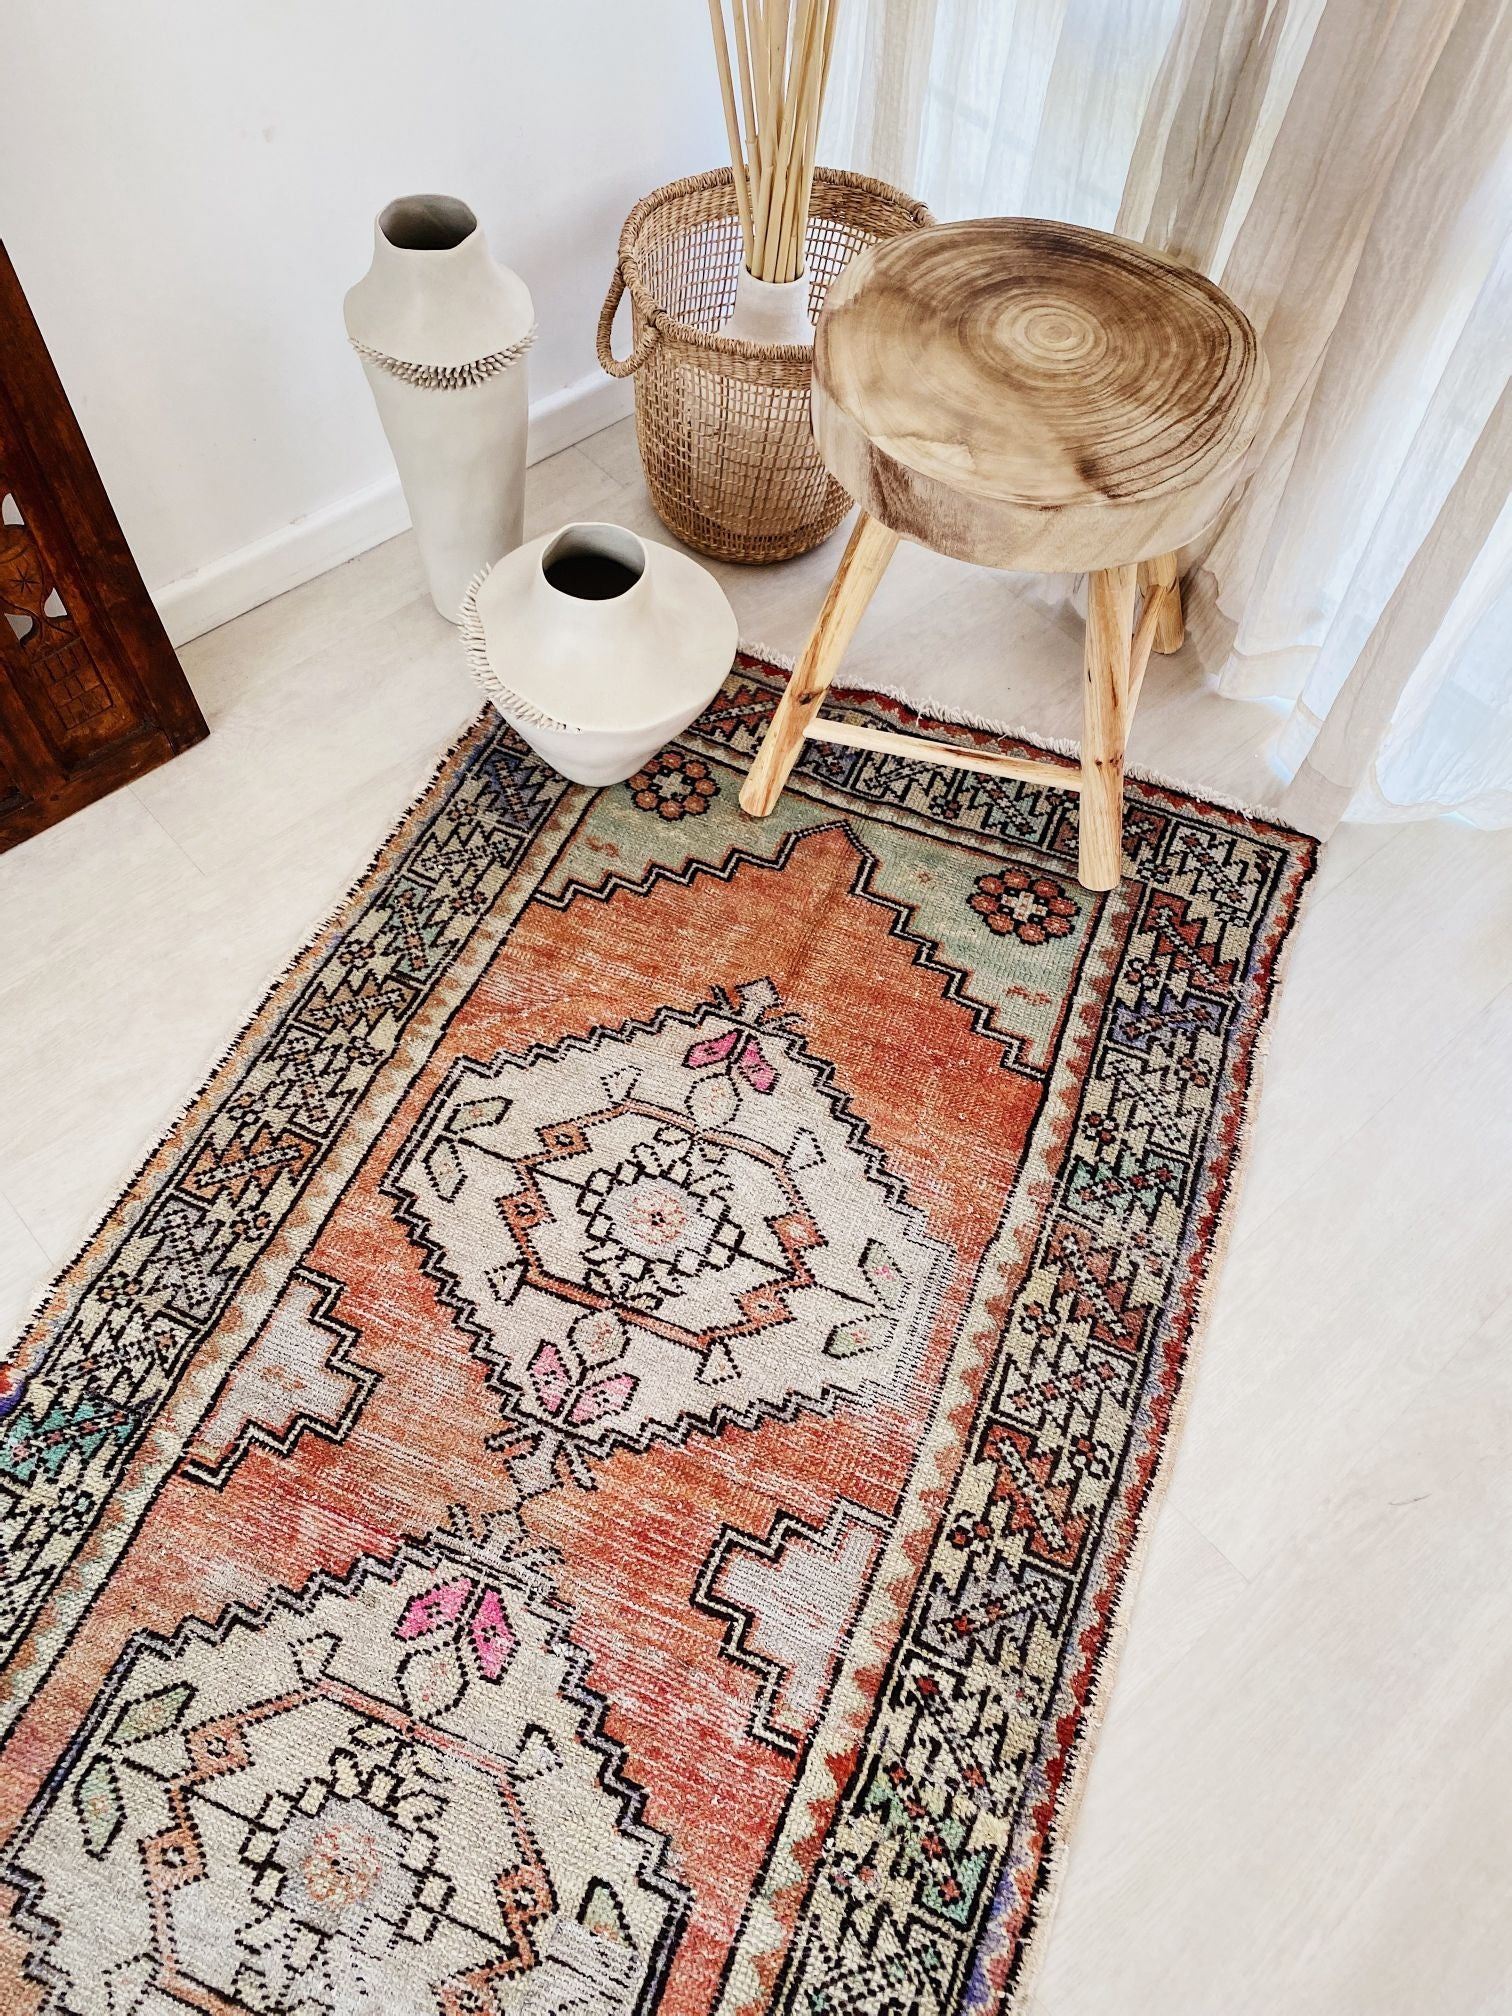 Mugla Faded Apricot Lavender Mint Turkish Hallway Kitchen Runner Rug - Lustere Living